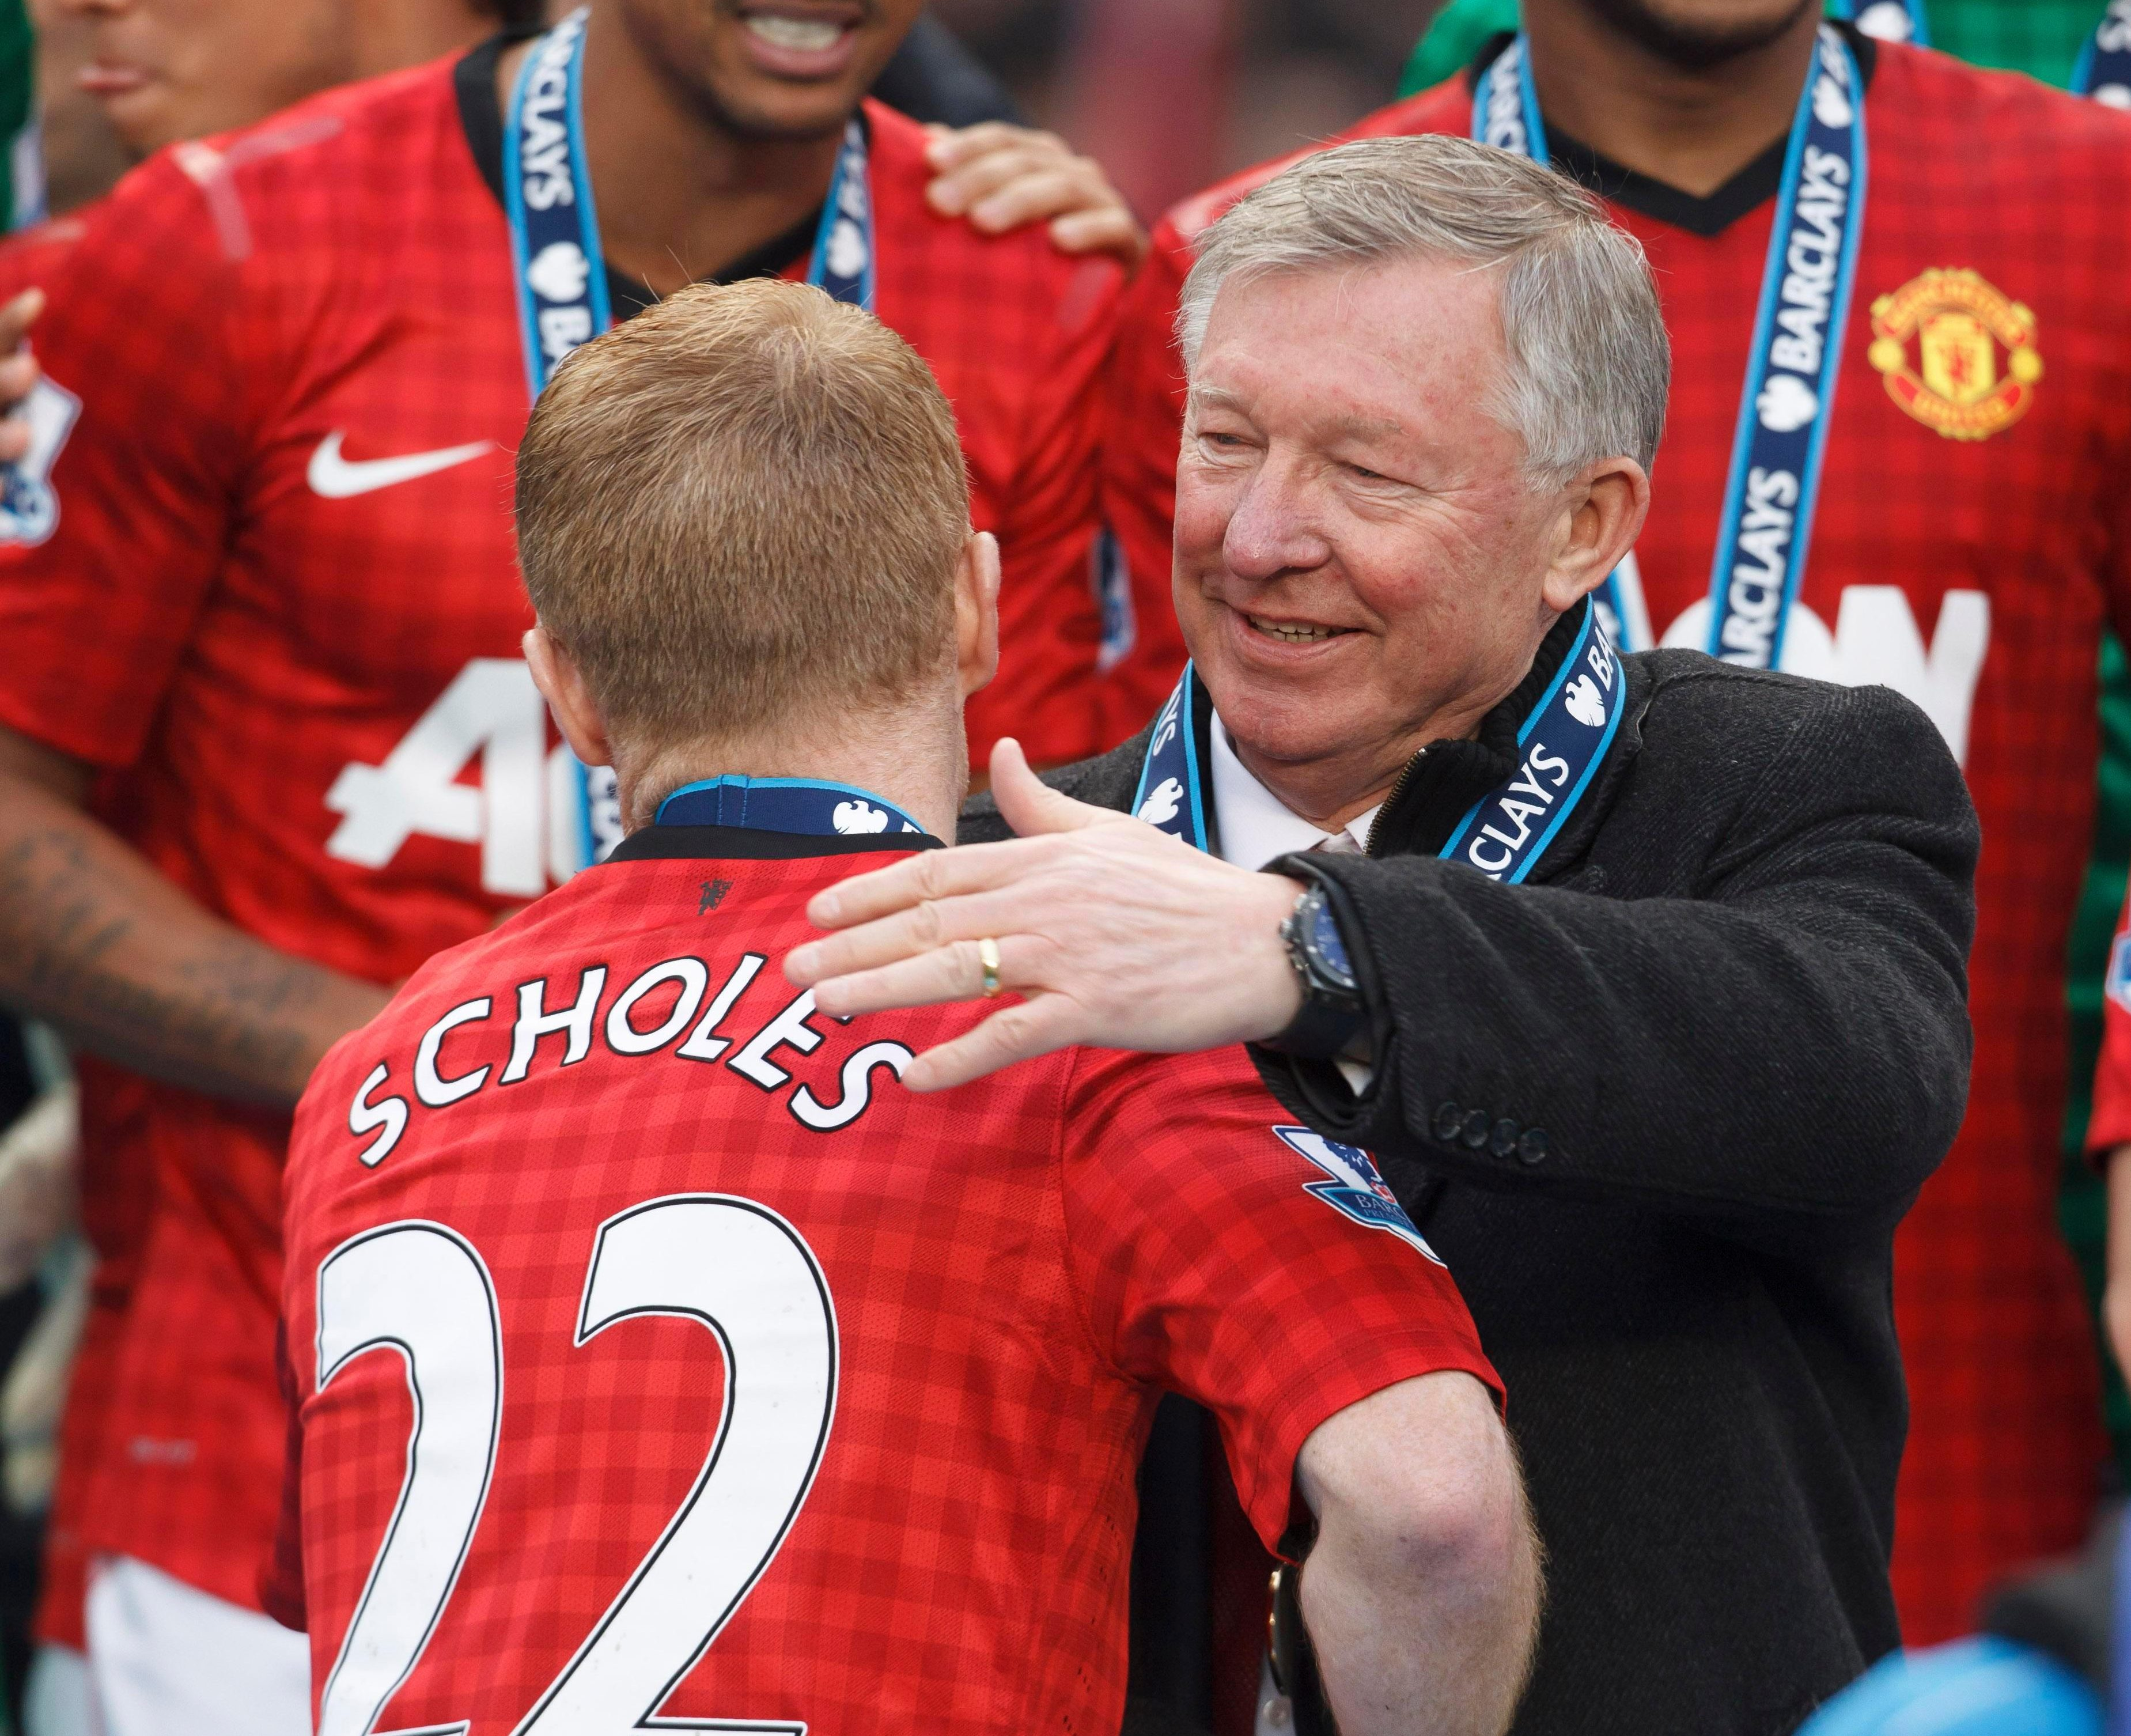 Sir Alex Ferguson has recorded a special video tribute to Paul Scholes